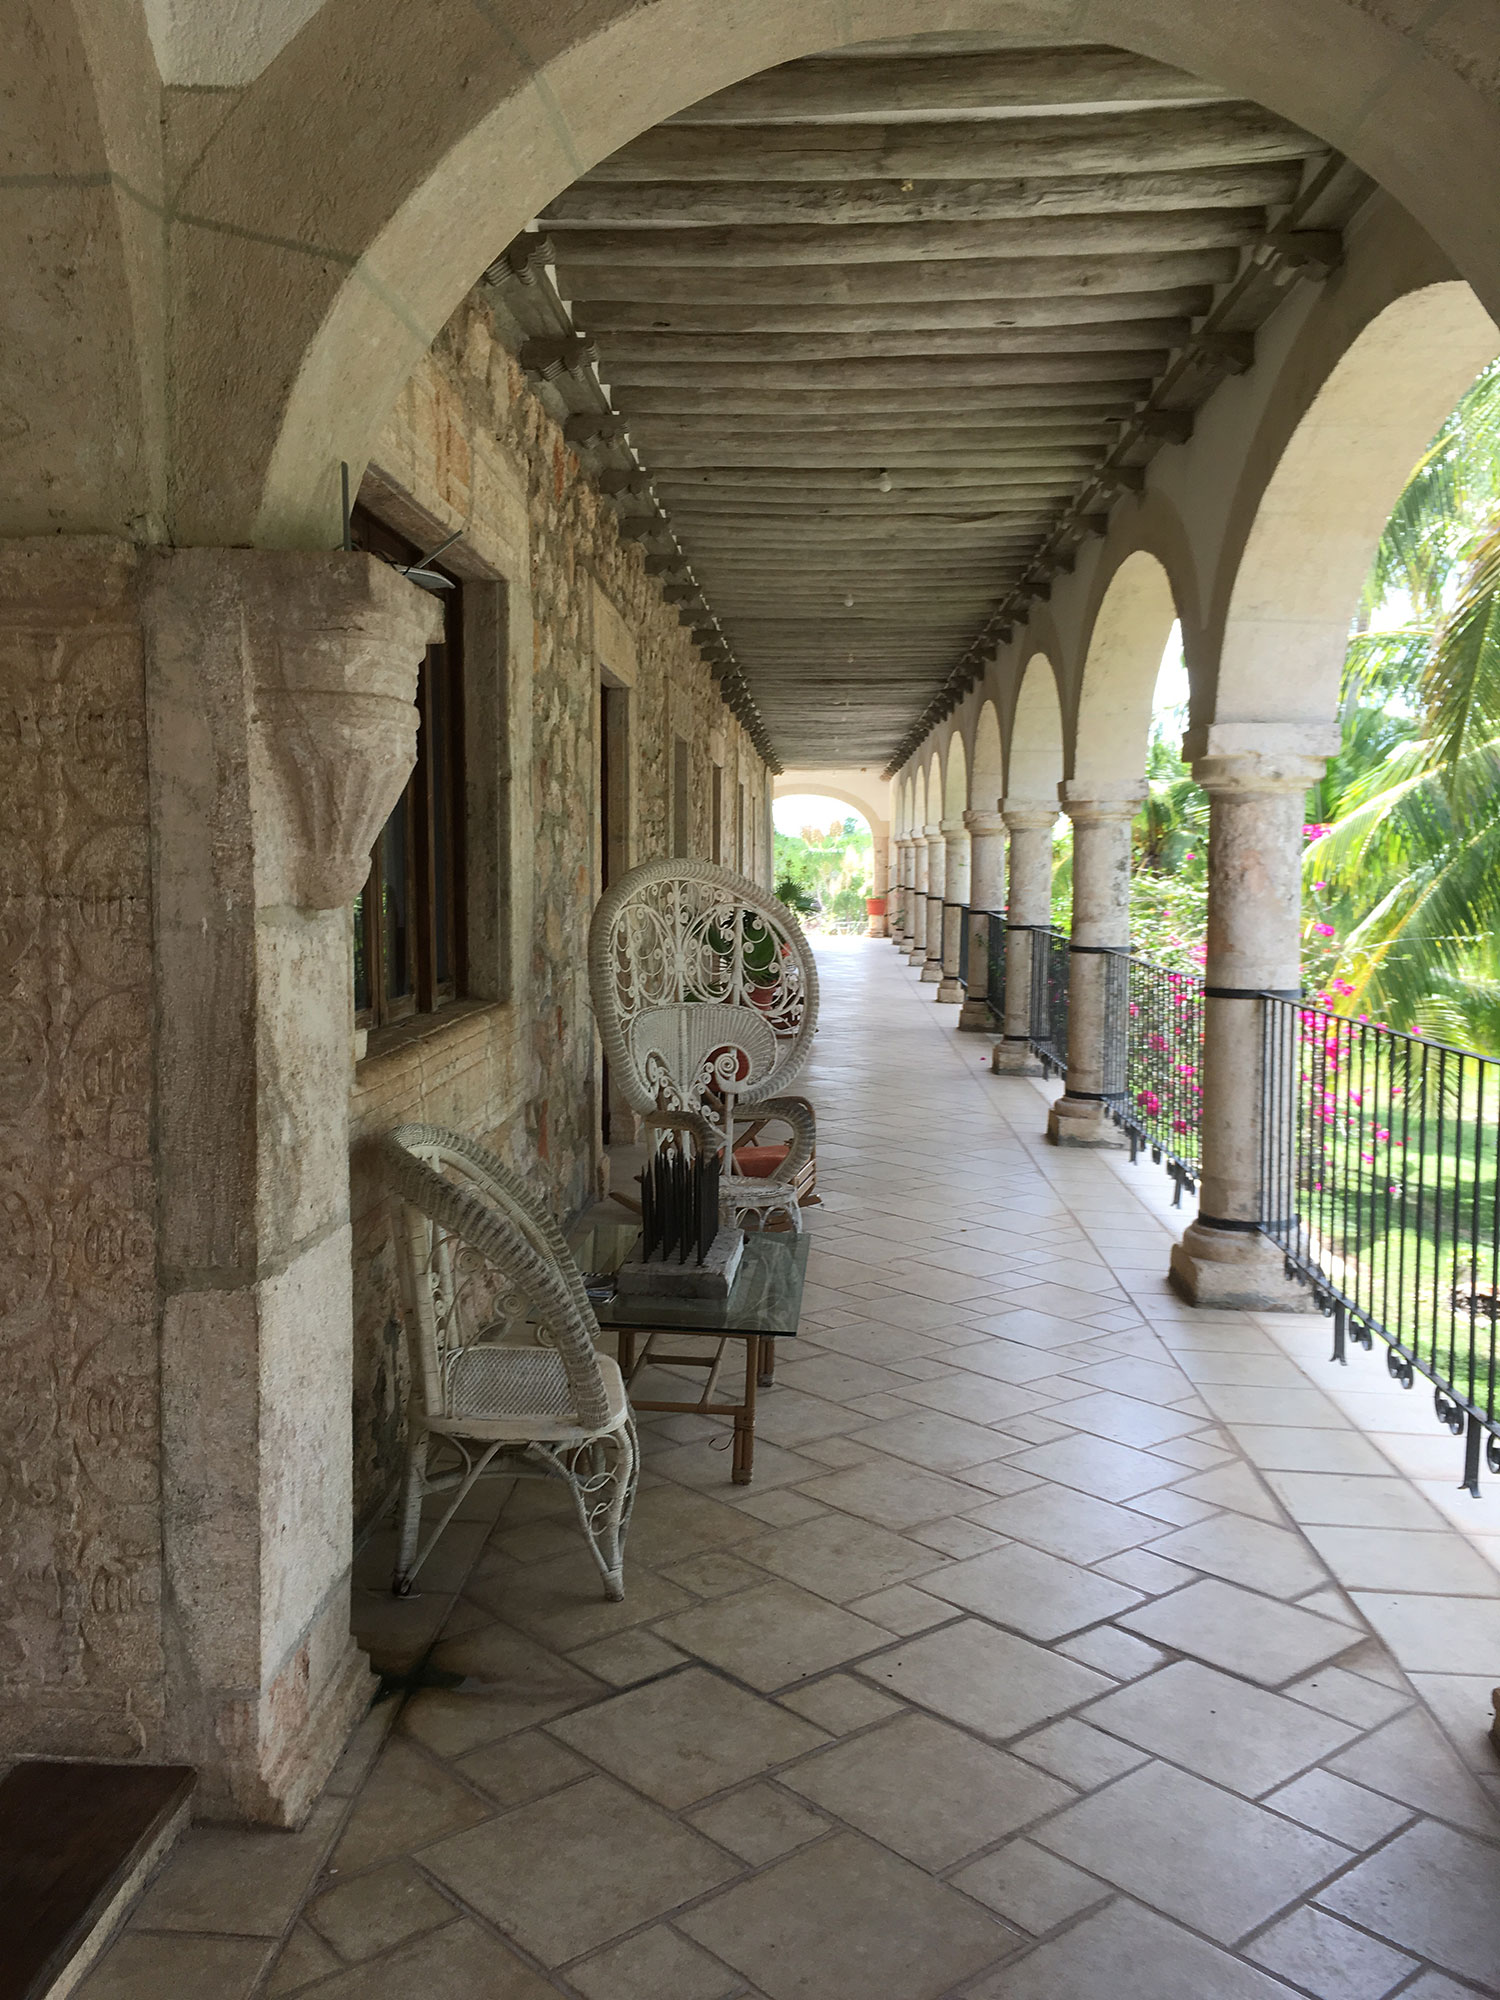 Hammocks_and_Ruins_Blog_Riviera_Maya_Mexico_Travel_Discover_Yucatan_What_to_do_Merida_Haciendas_Tepich_8.jpg